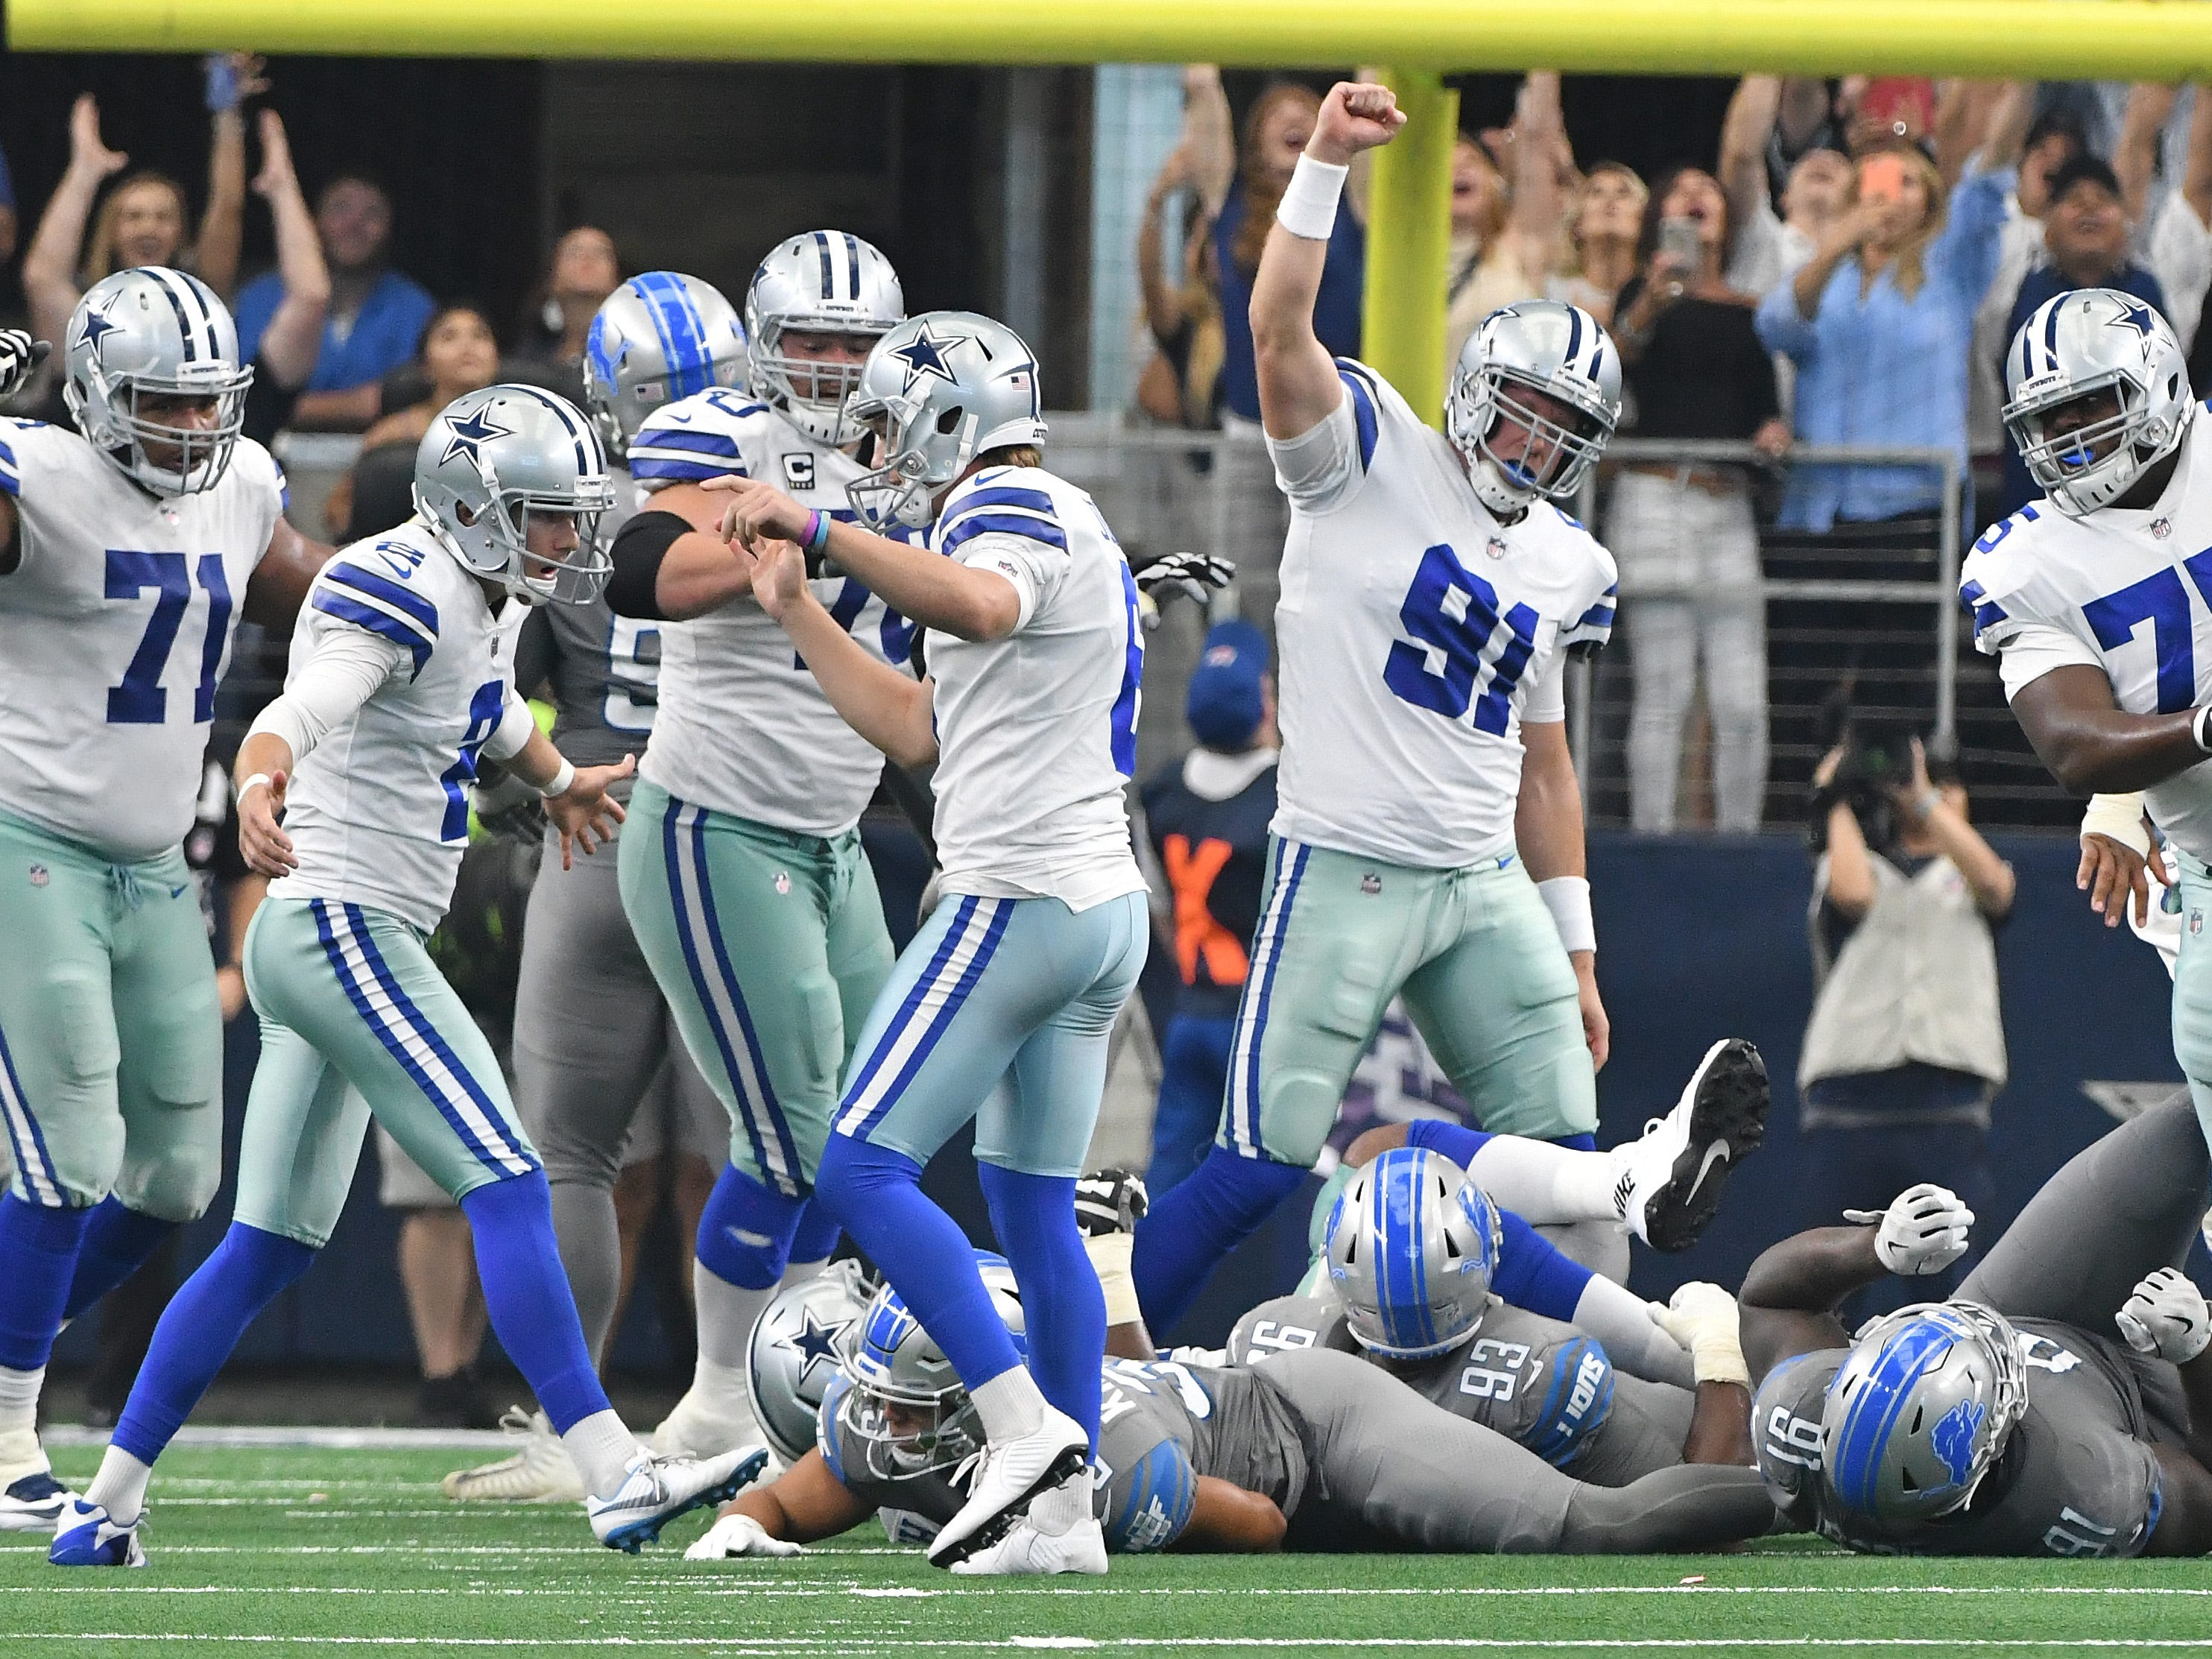 Cowboys players begin to celebrate with kicker Brett Maher after he splits the uprights with a last second field goal to win the game at the end of the fourth quarter.